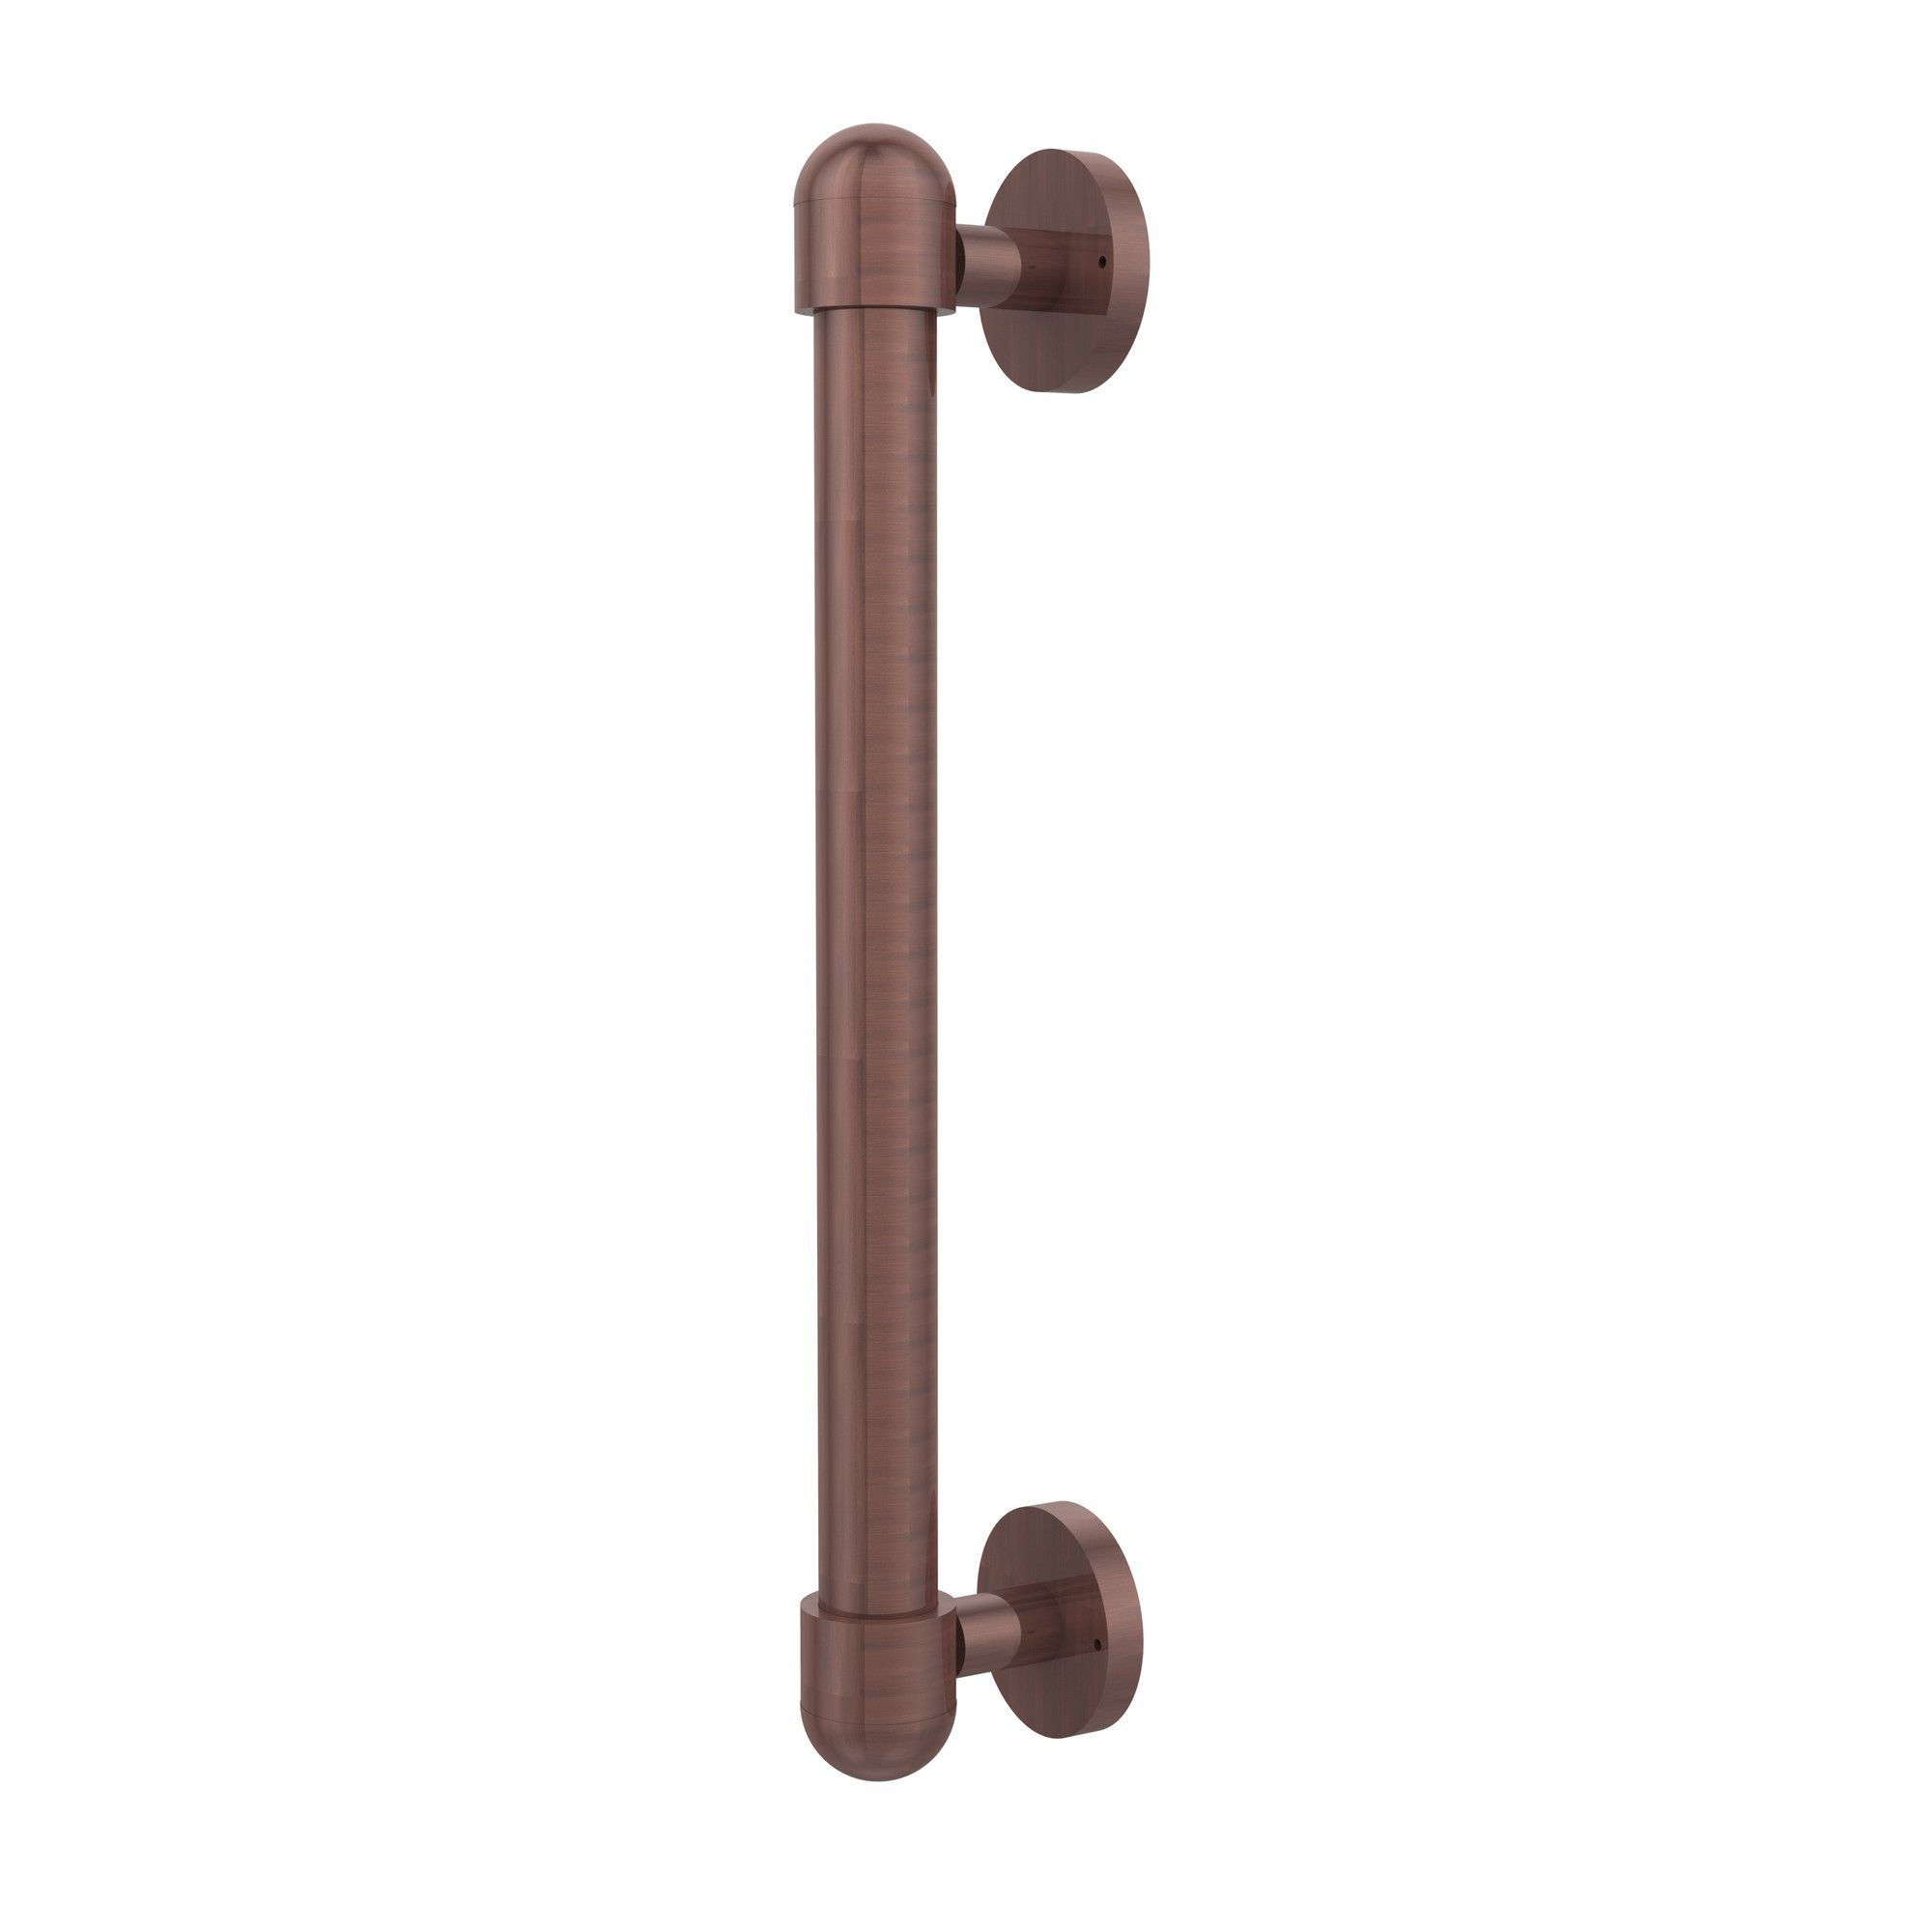 Luxury Antique Copper Cabinet Pulls